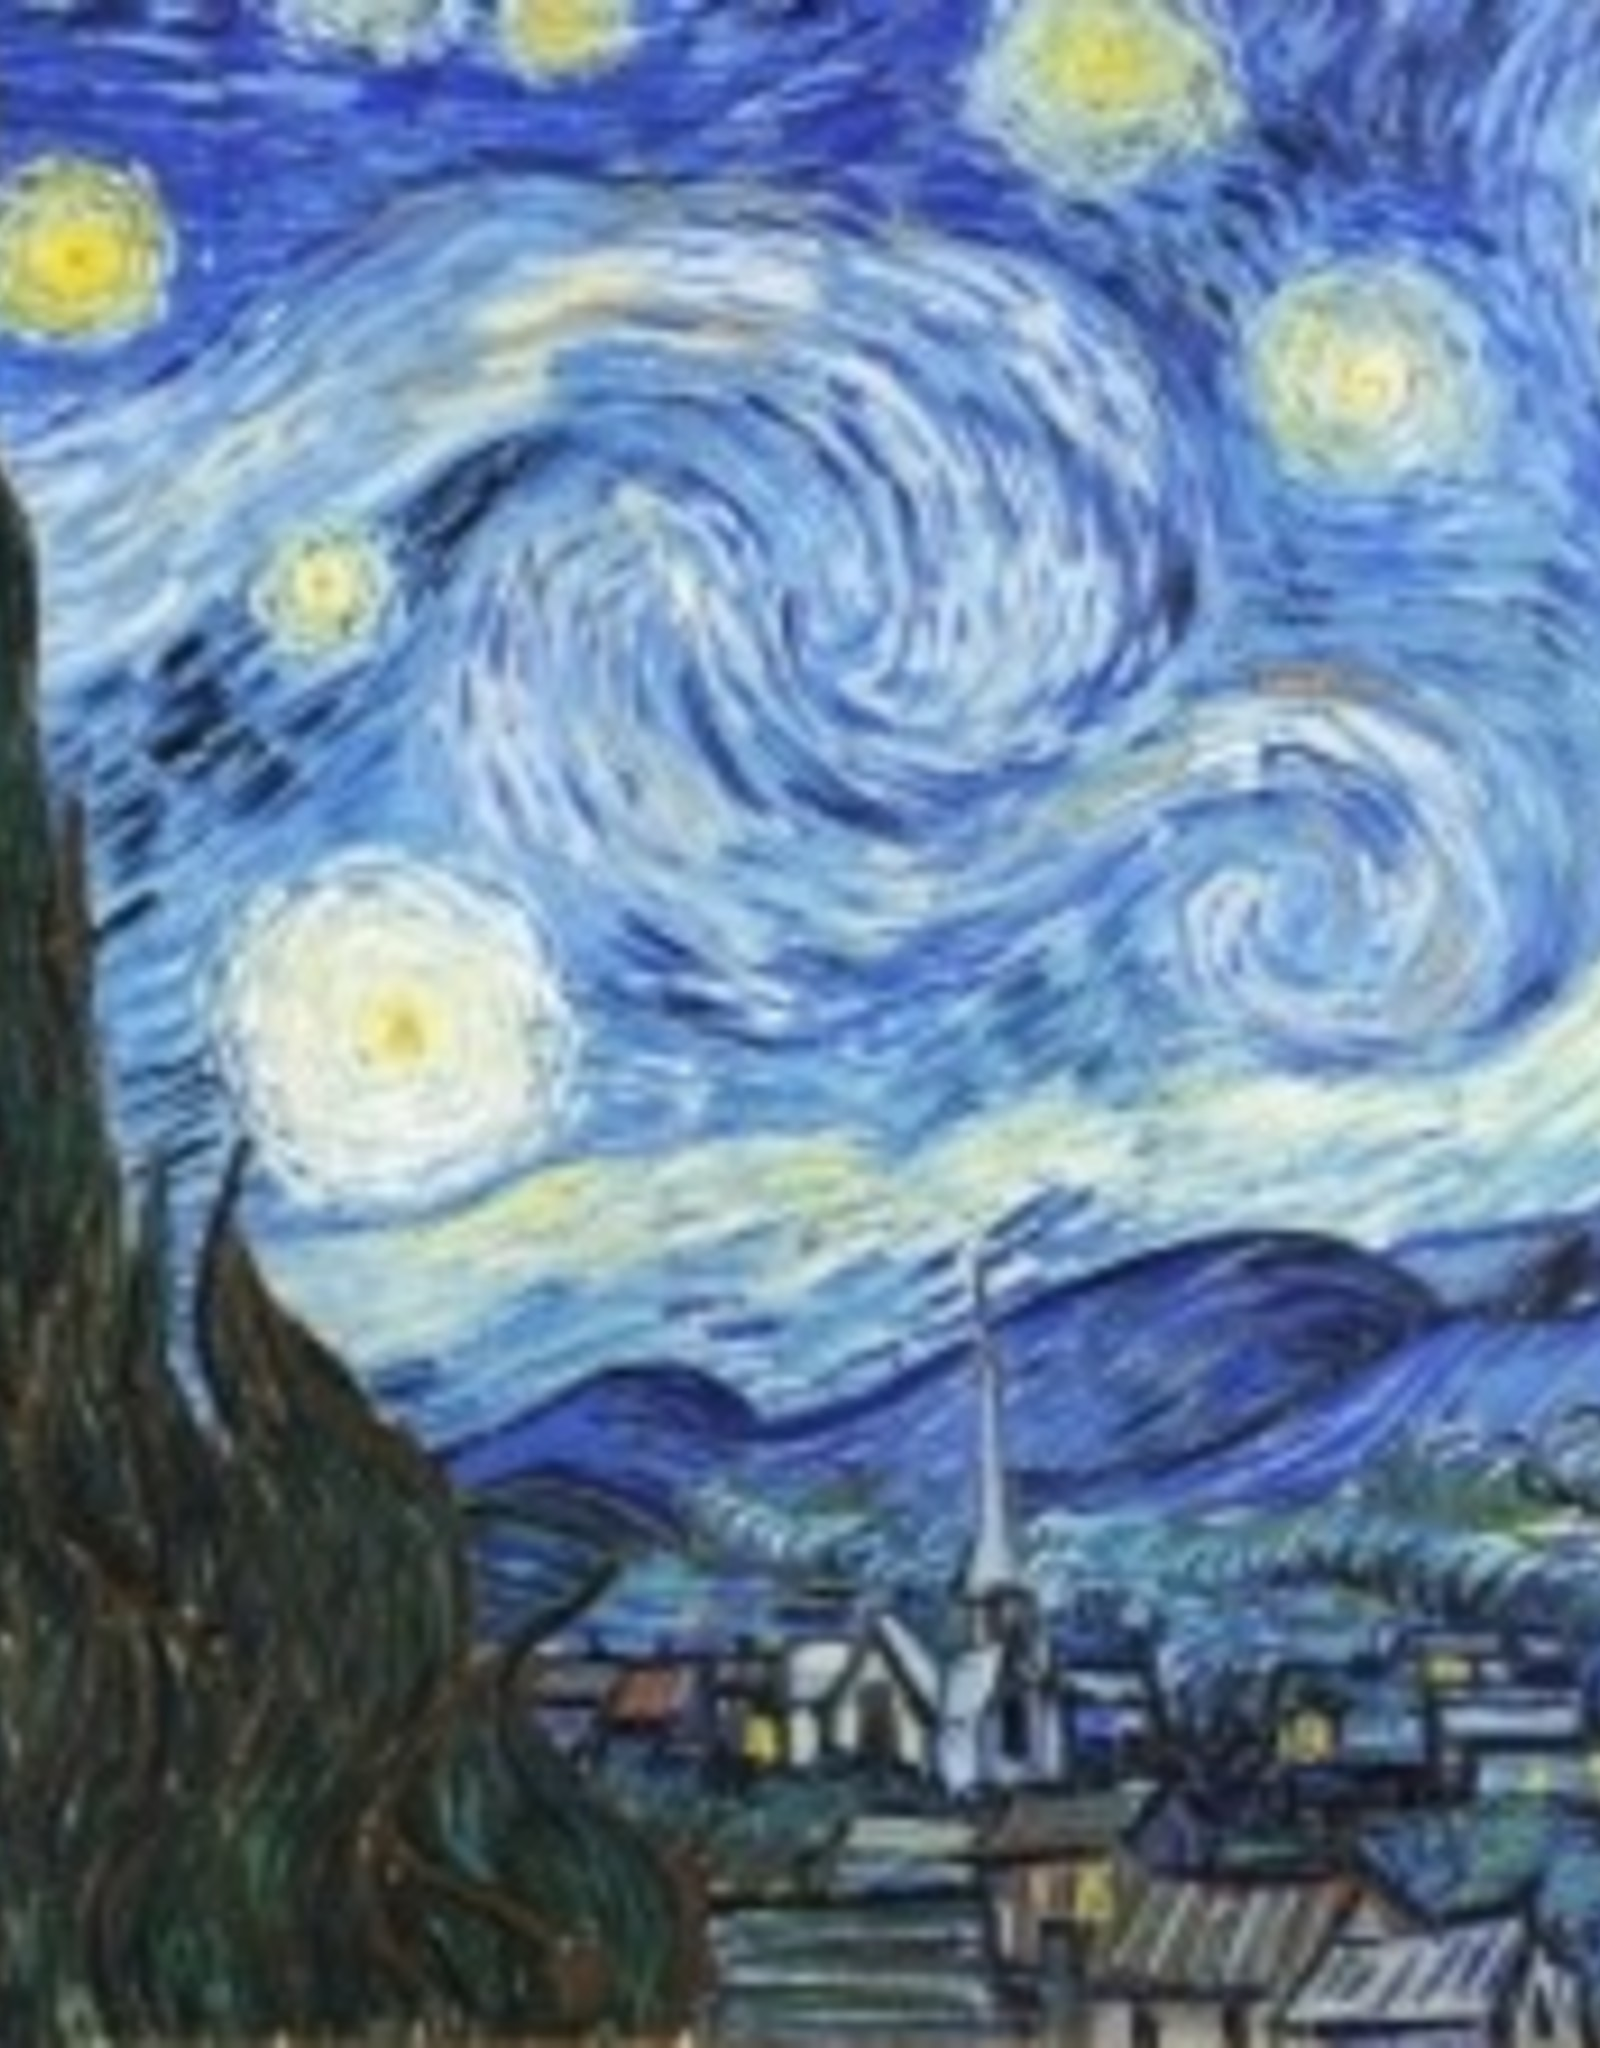 Peter Pauper Press Jigsaw Puzzle: Starry Night